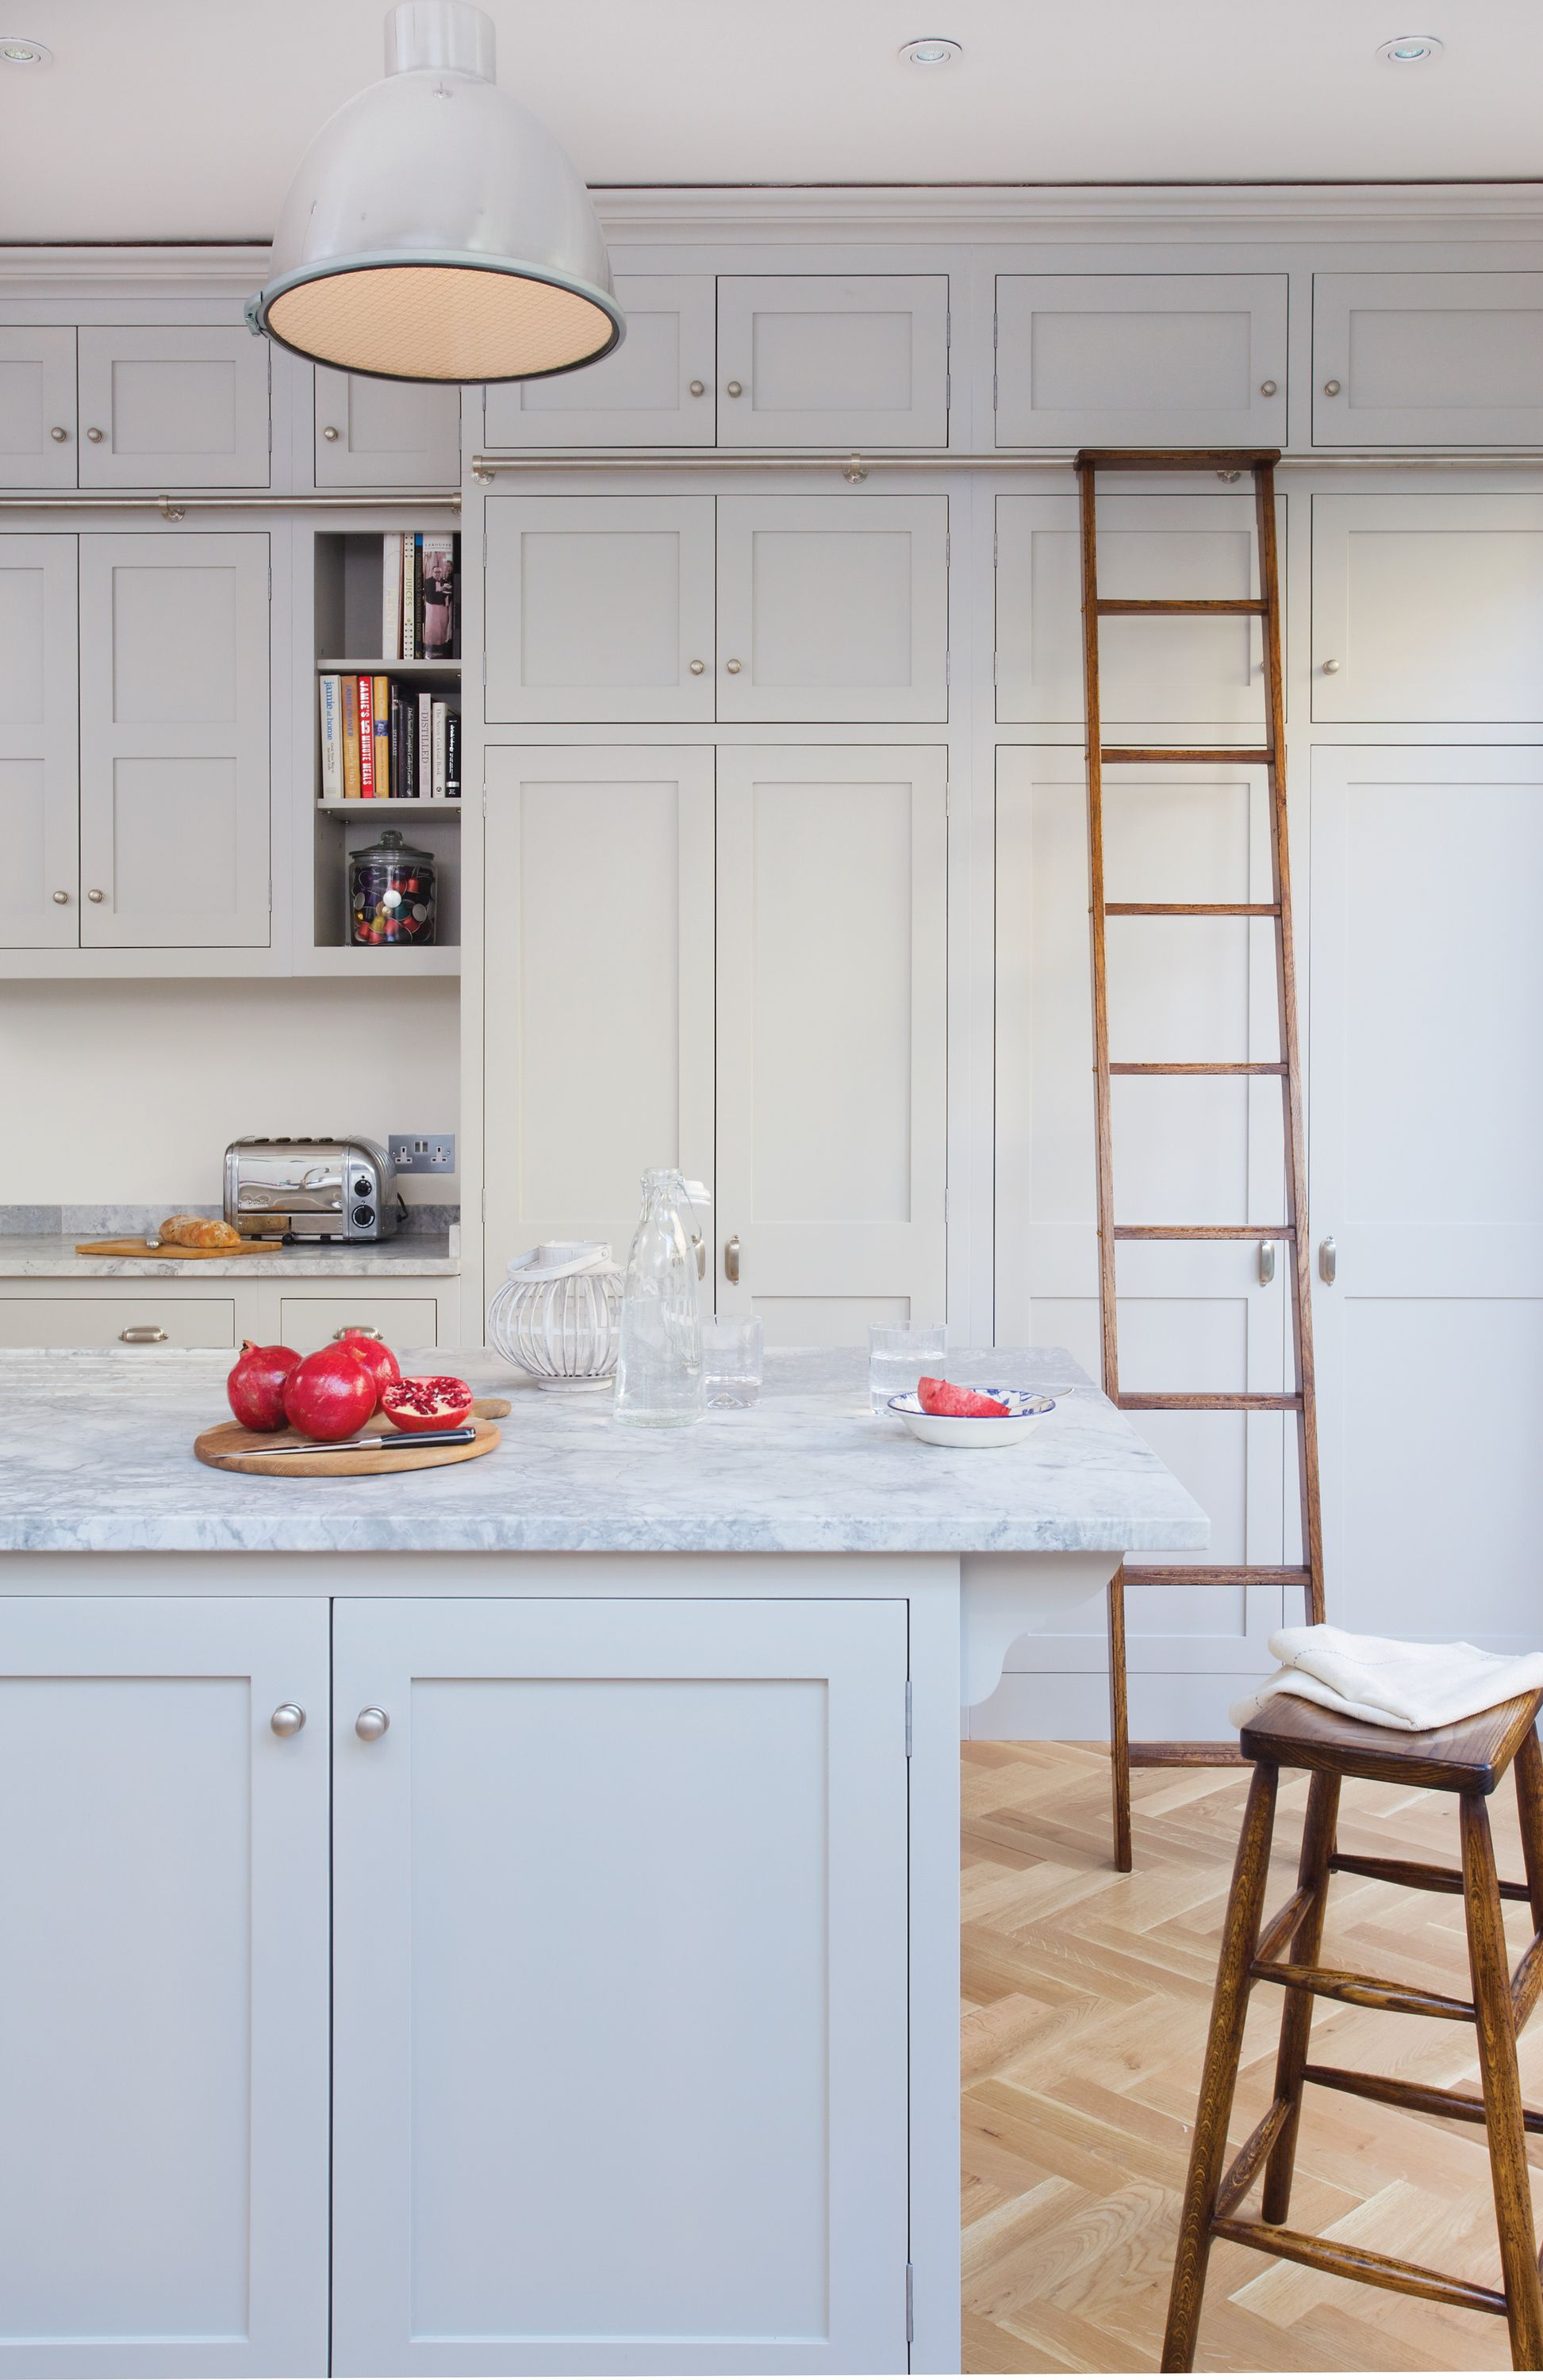 Imported From Image Metadata Charlie Kingham Kitchen Painted Kitchen London Shaker Style Kitchen Cabinets Tall Kitchen Cabinets Kitchen Cabinet Styles